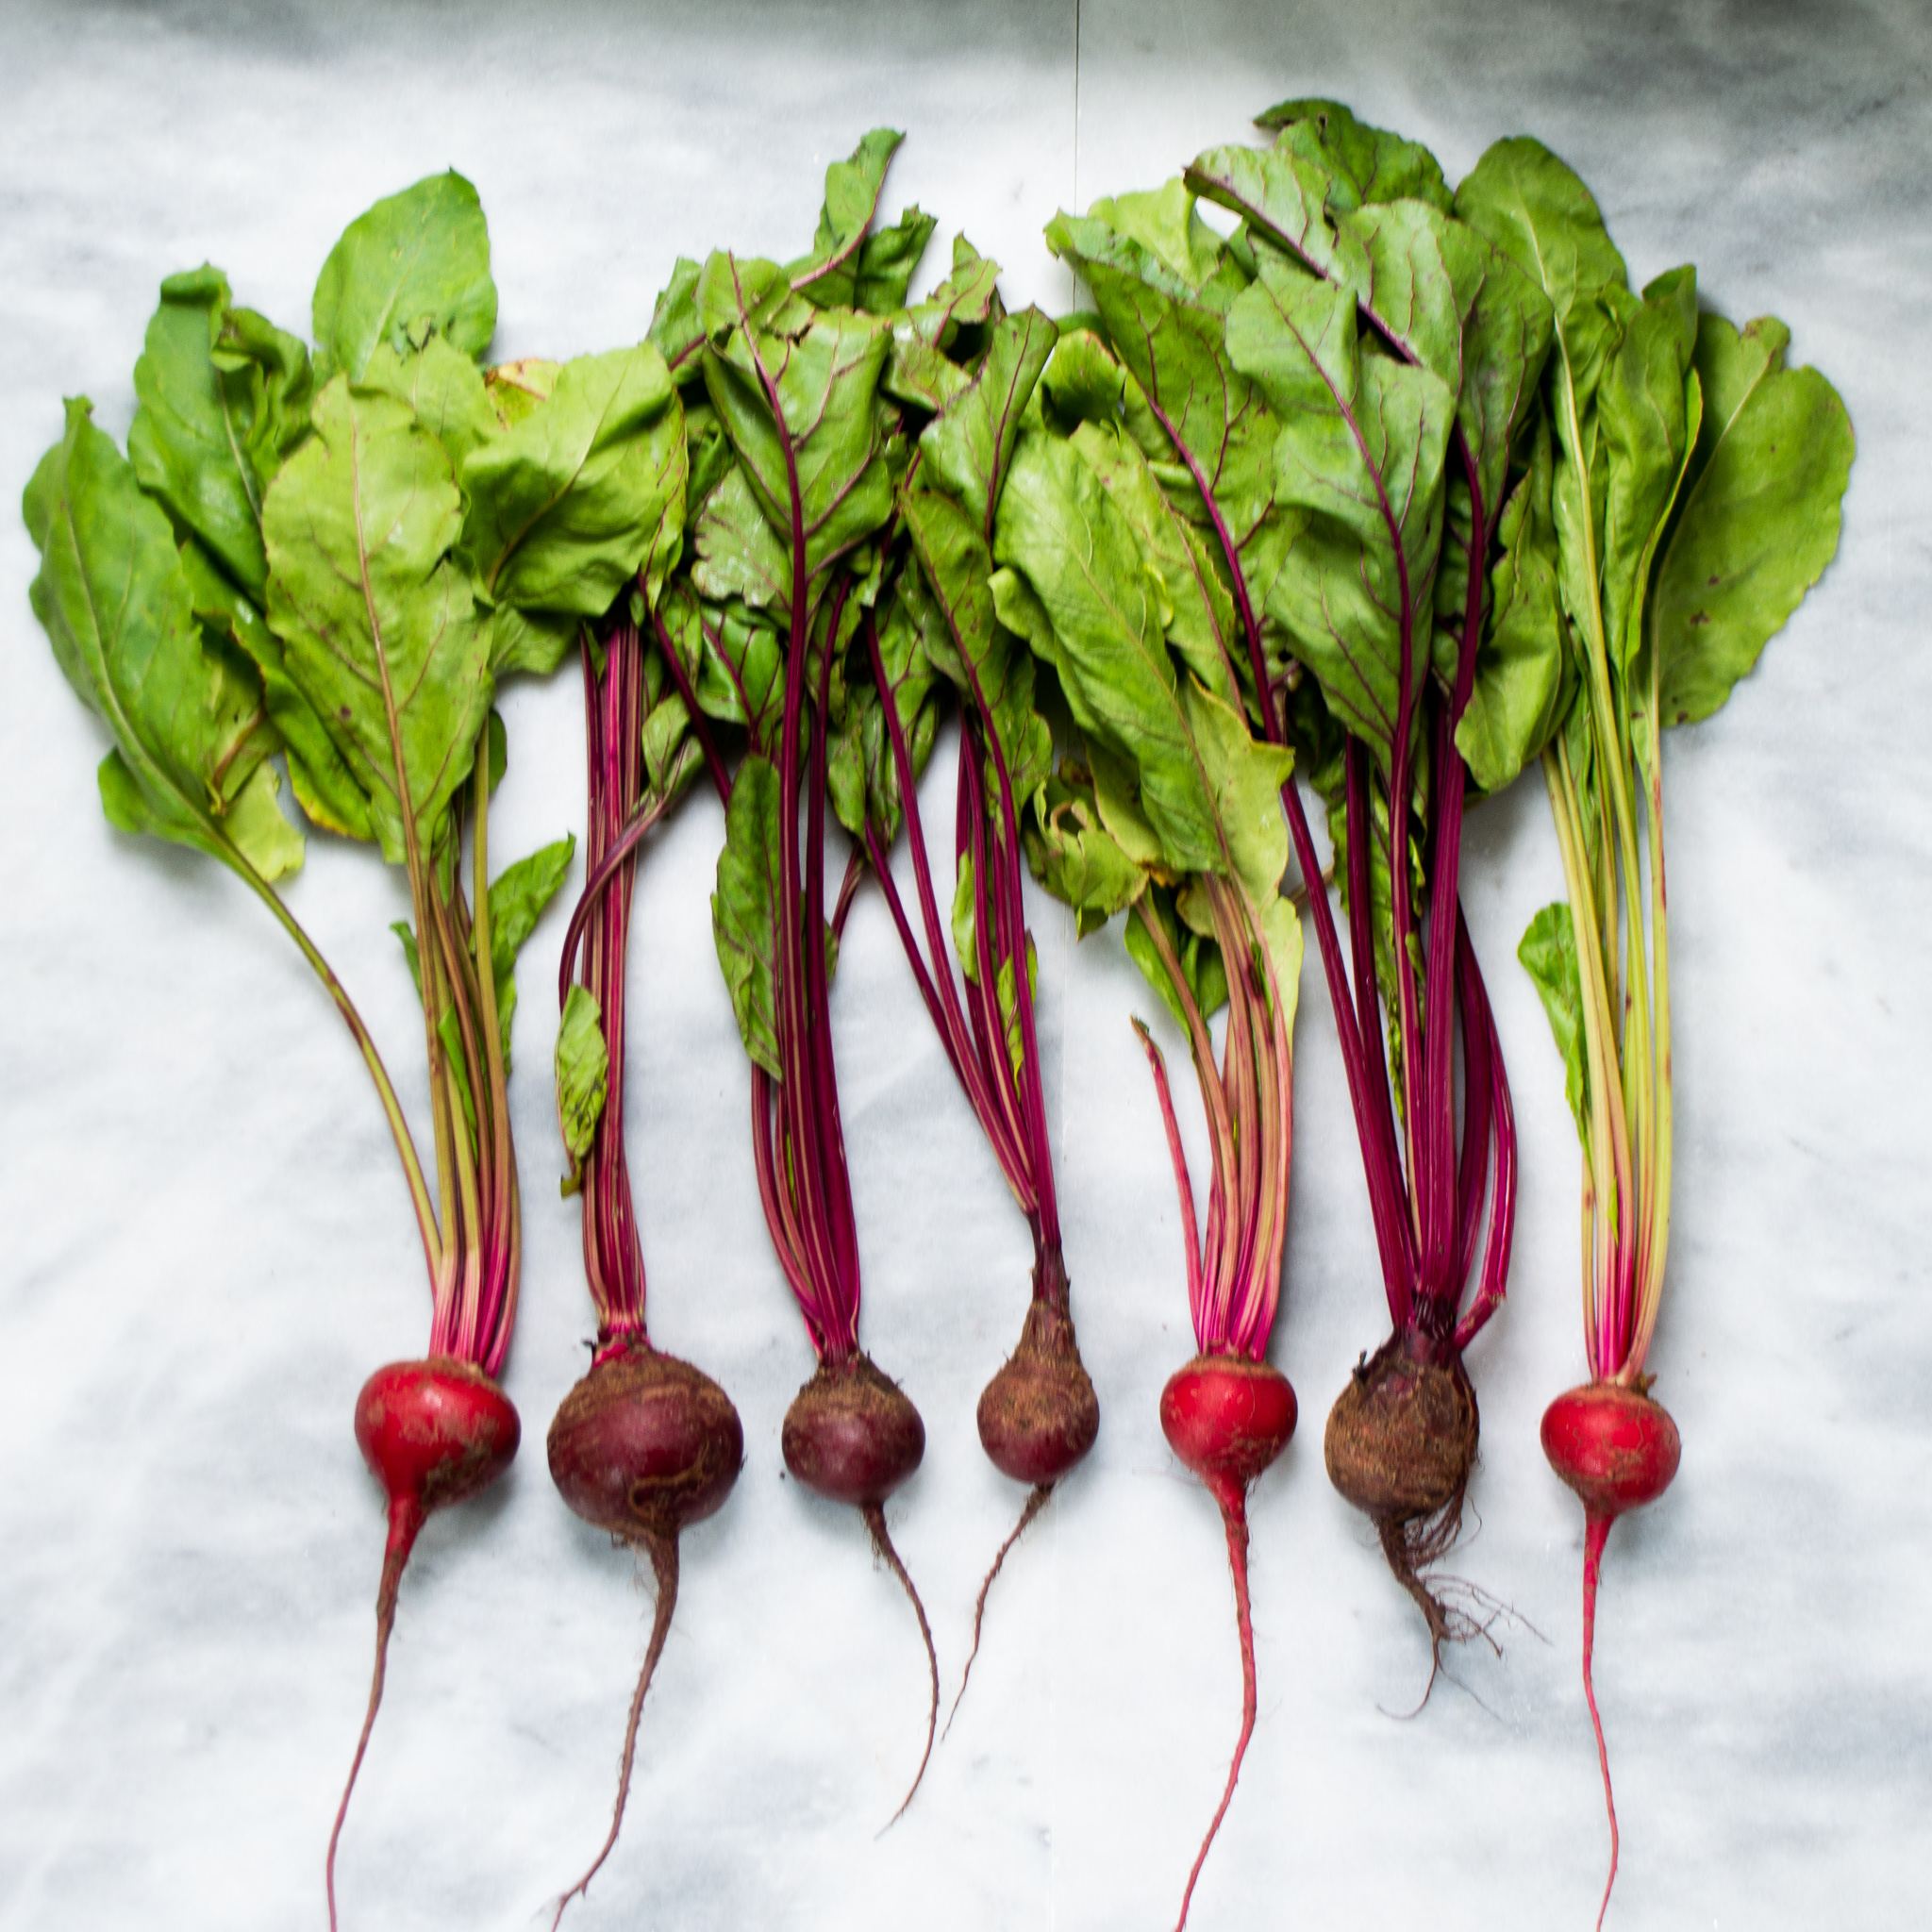 raw beets from the farmers market